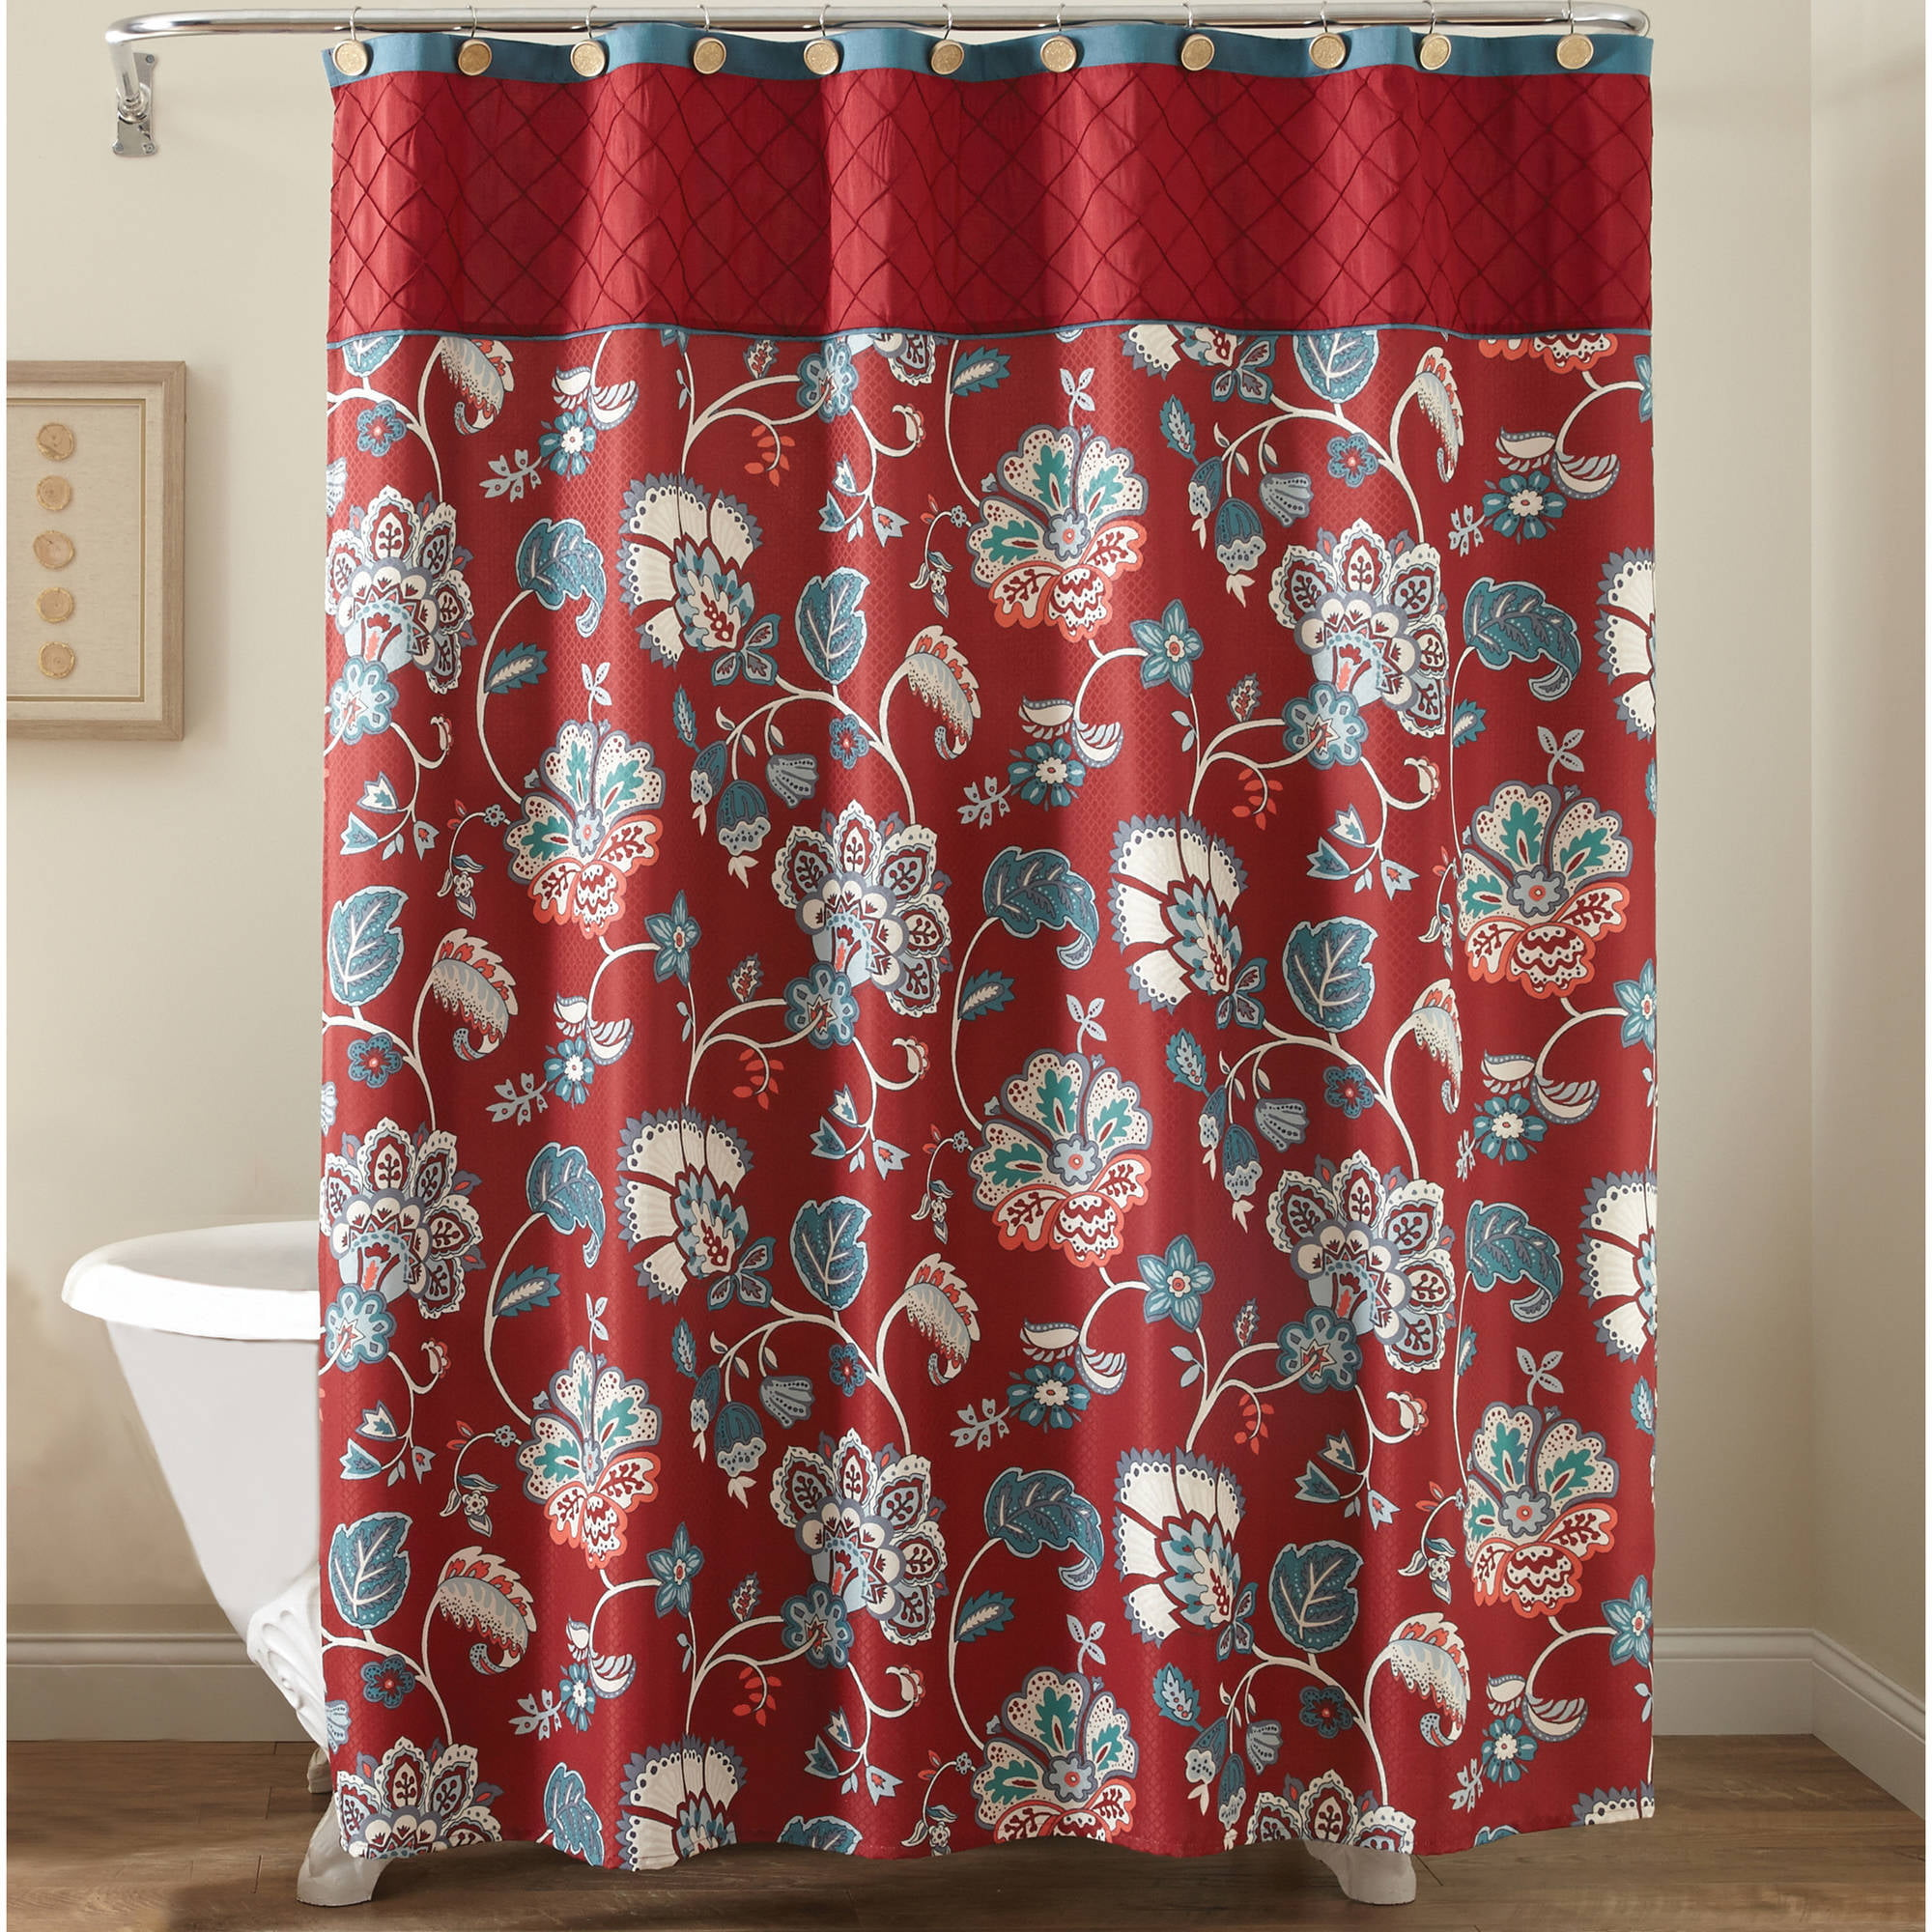 Better Homes and Gardens Red Jacobean Fabric Shower Curtain by Saturday Knight LTD